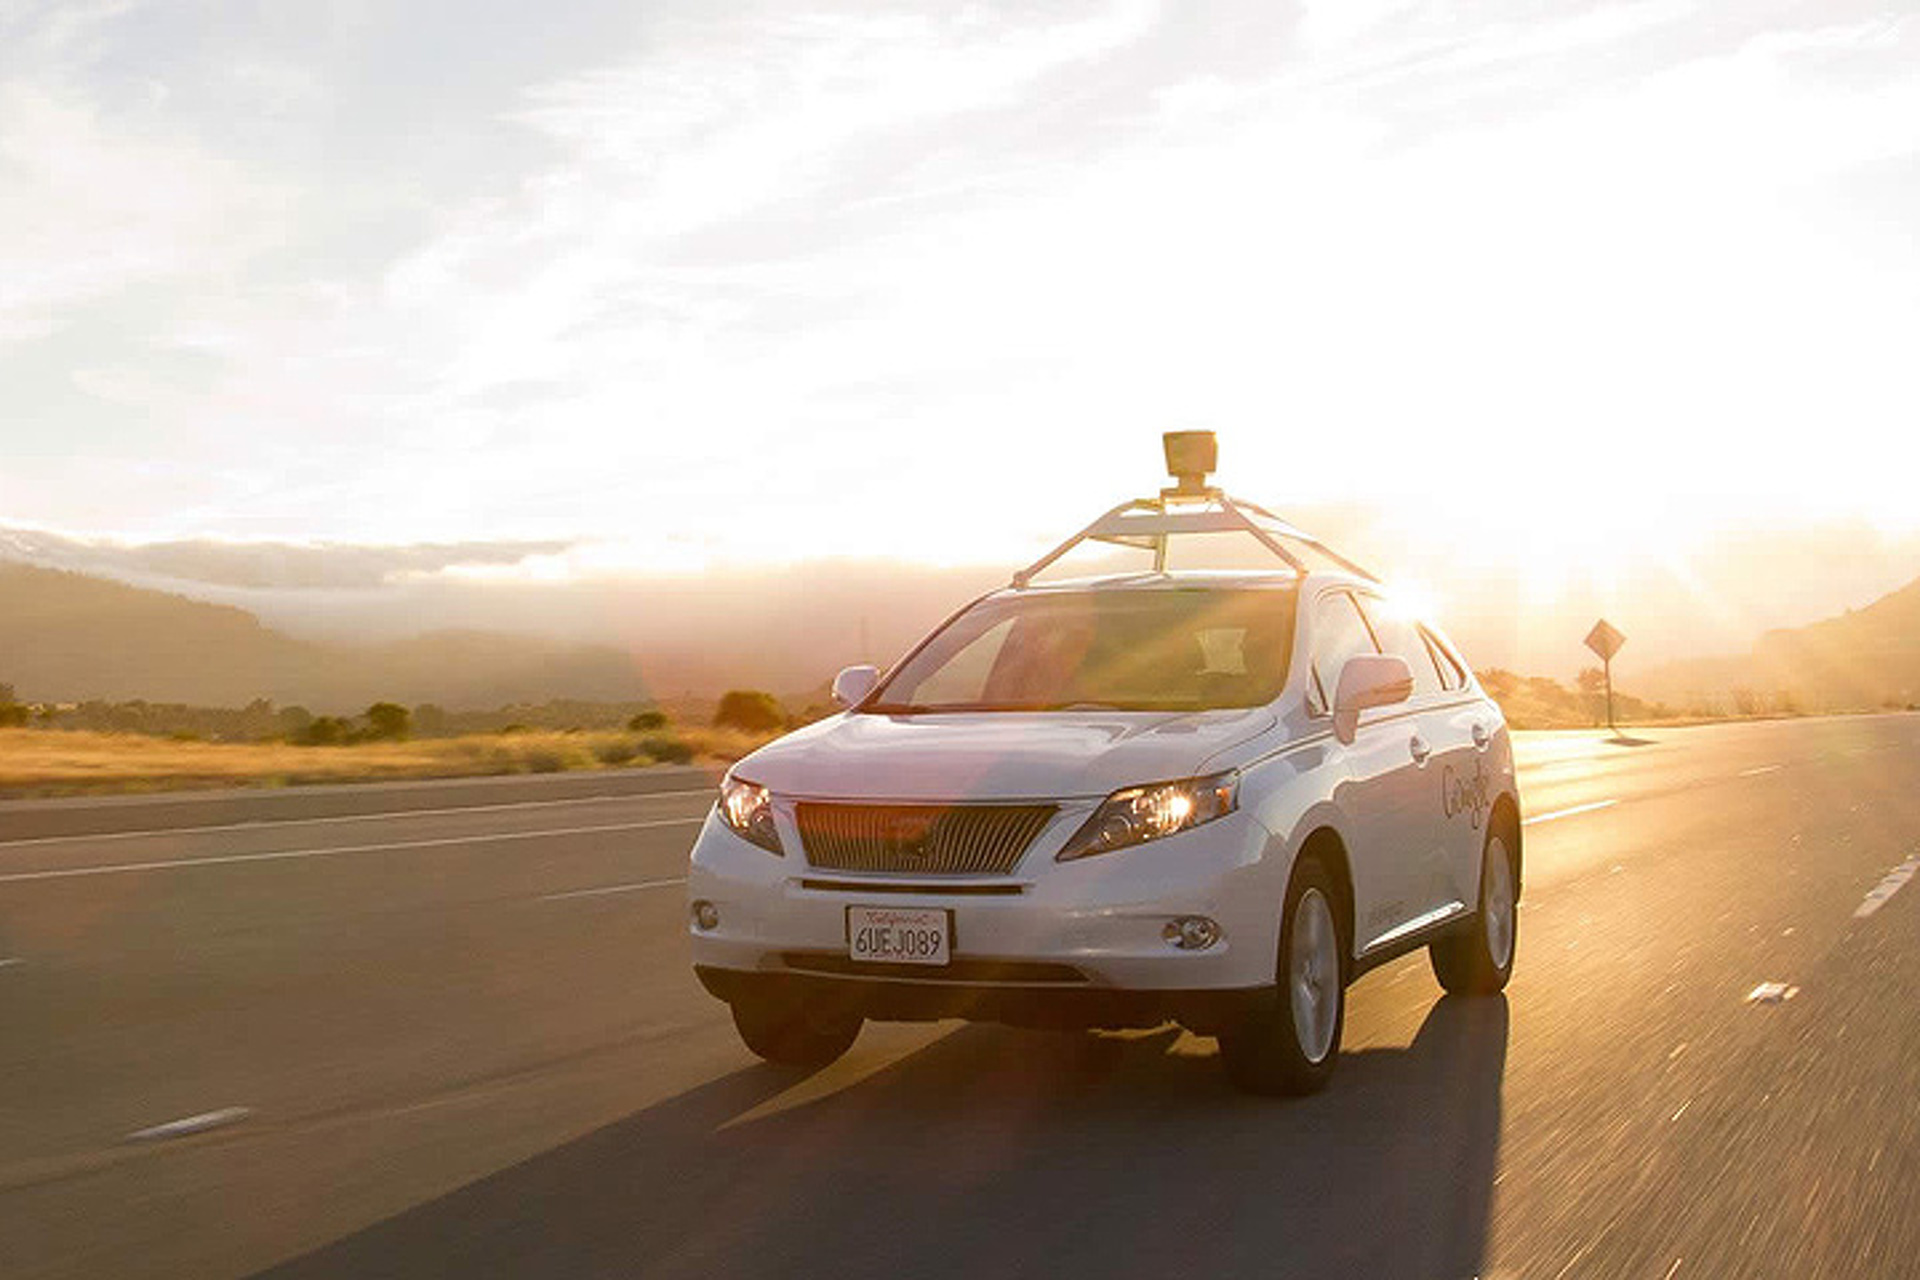 Allstate Says Driverless Cars Could be Bad for Insurance Industry